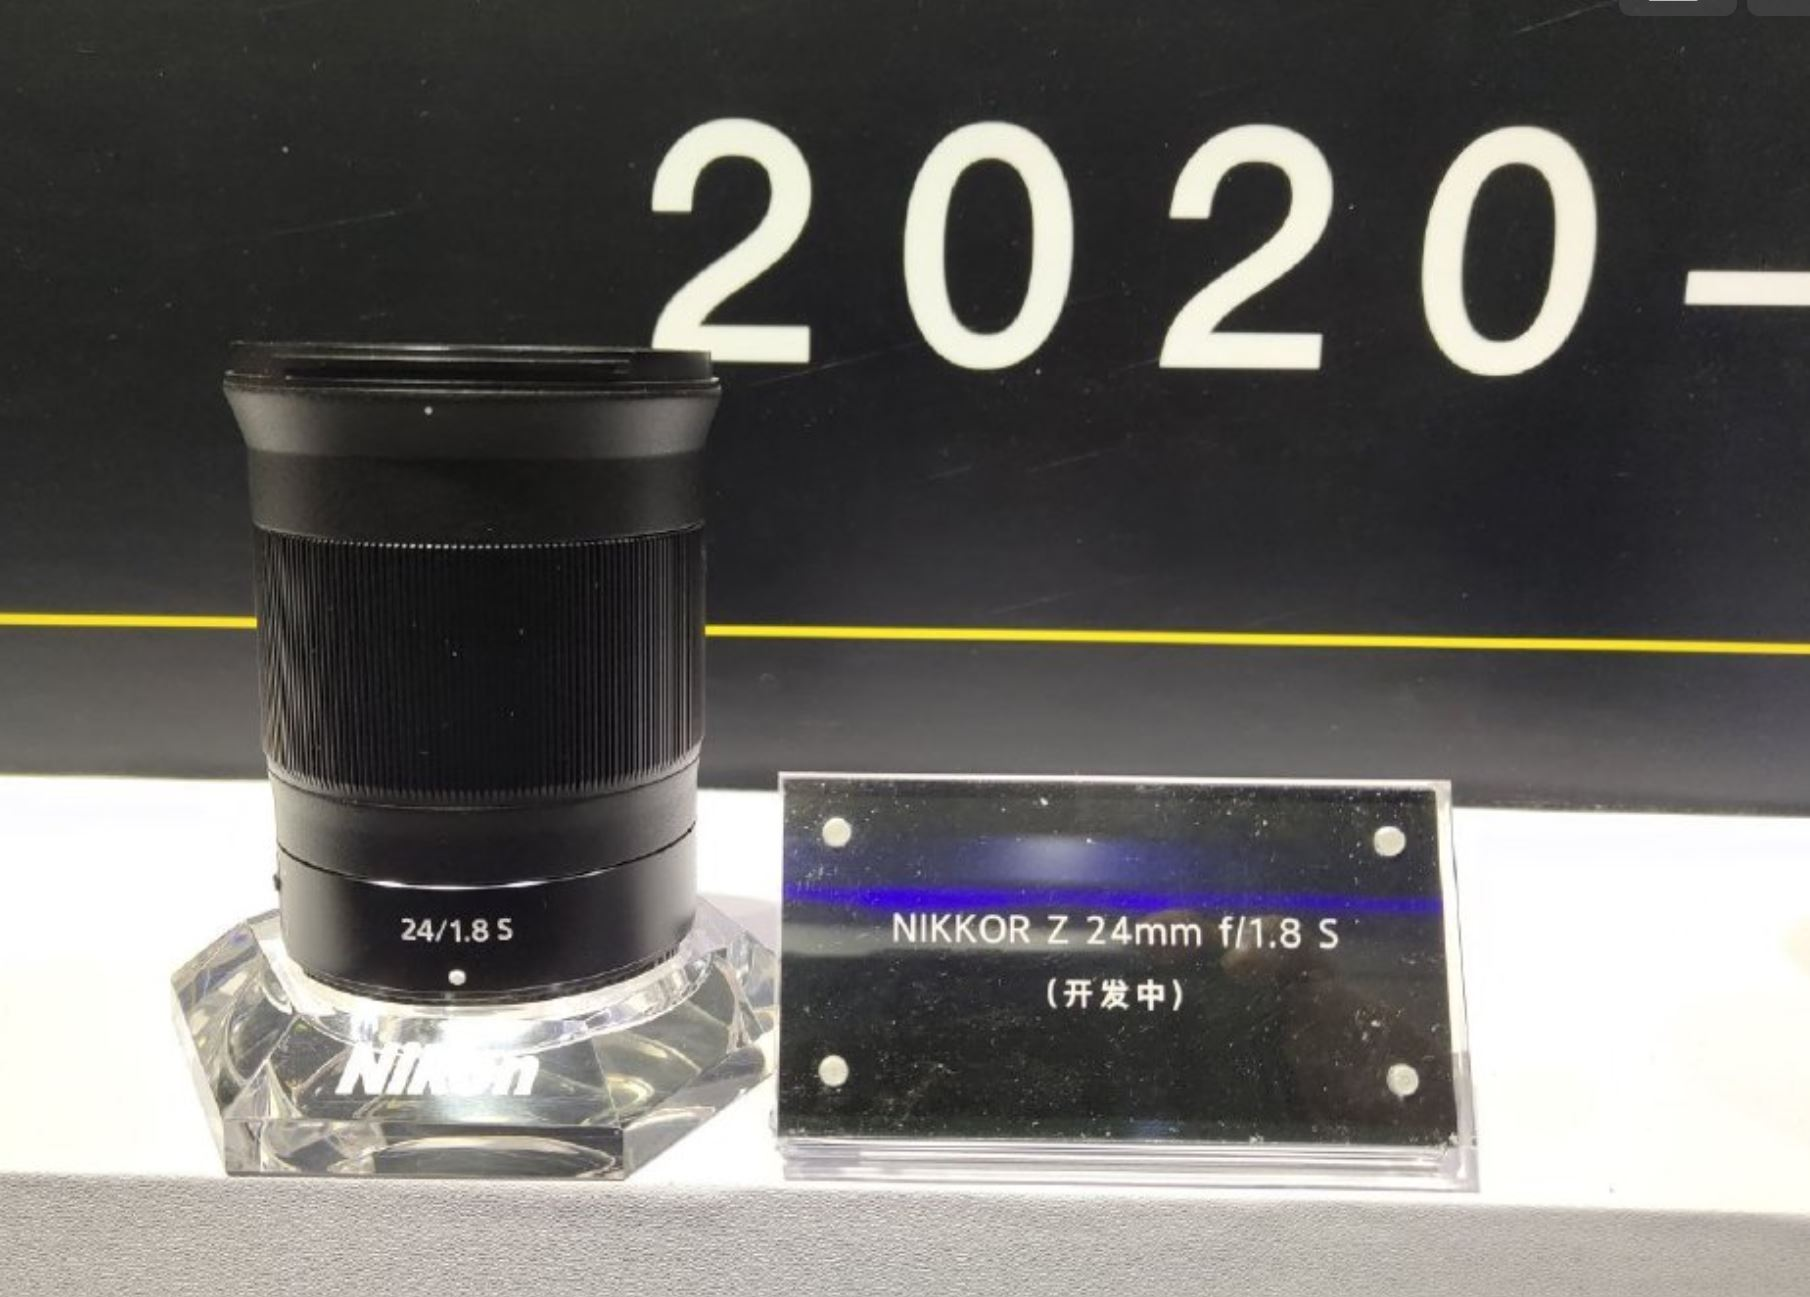 NIKKOR Z 24mm F/1 8 S Lens | Nikon Rumors CO